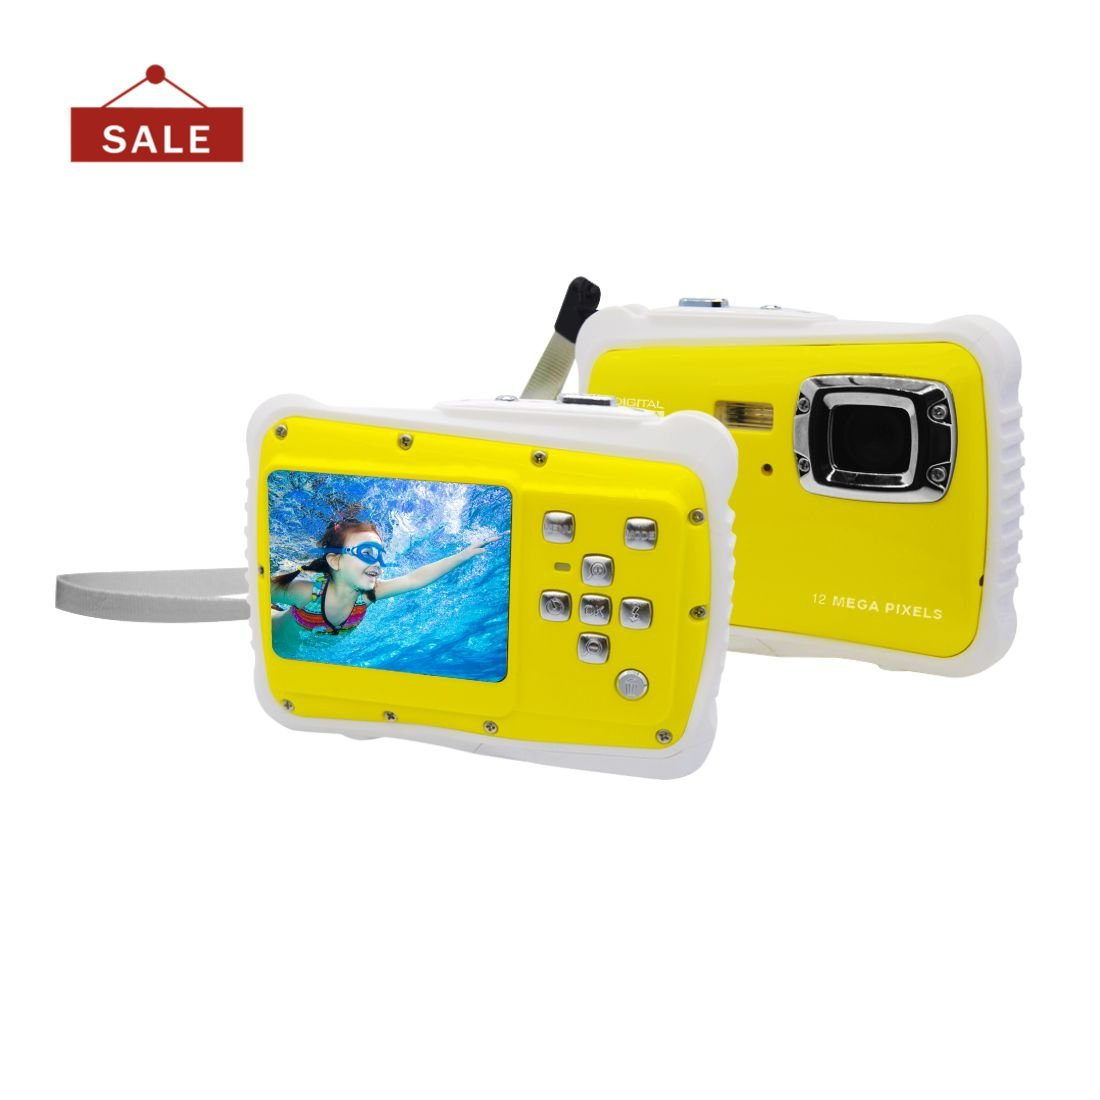 Underwater Action Digital Camera Camcorder for Kids, waterproof 3M/9.8ft, 12MP 1080p, Yellow